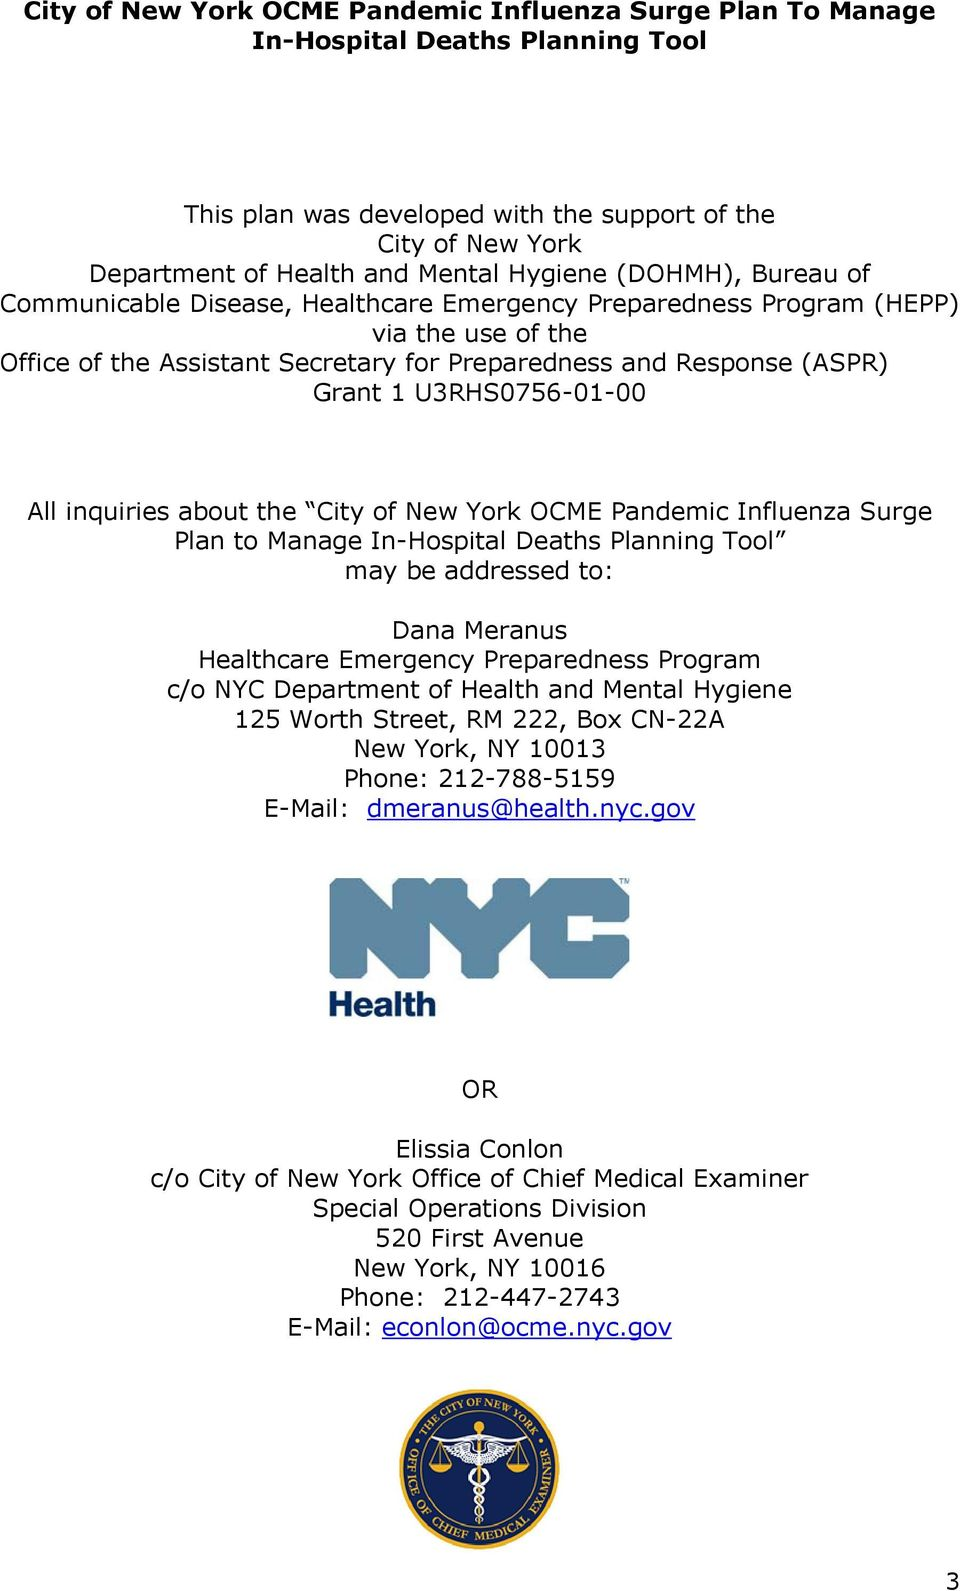 City of New York Office of Chief Medical Examiner Pandemic